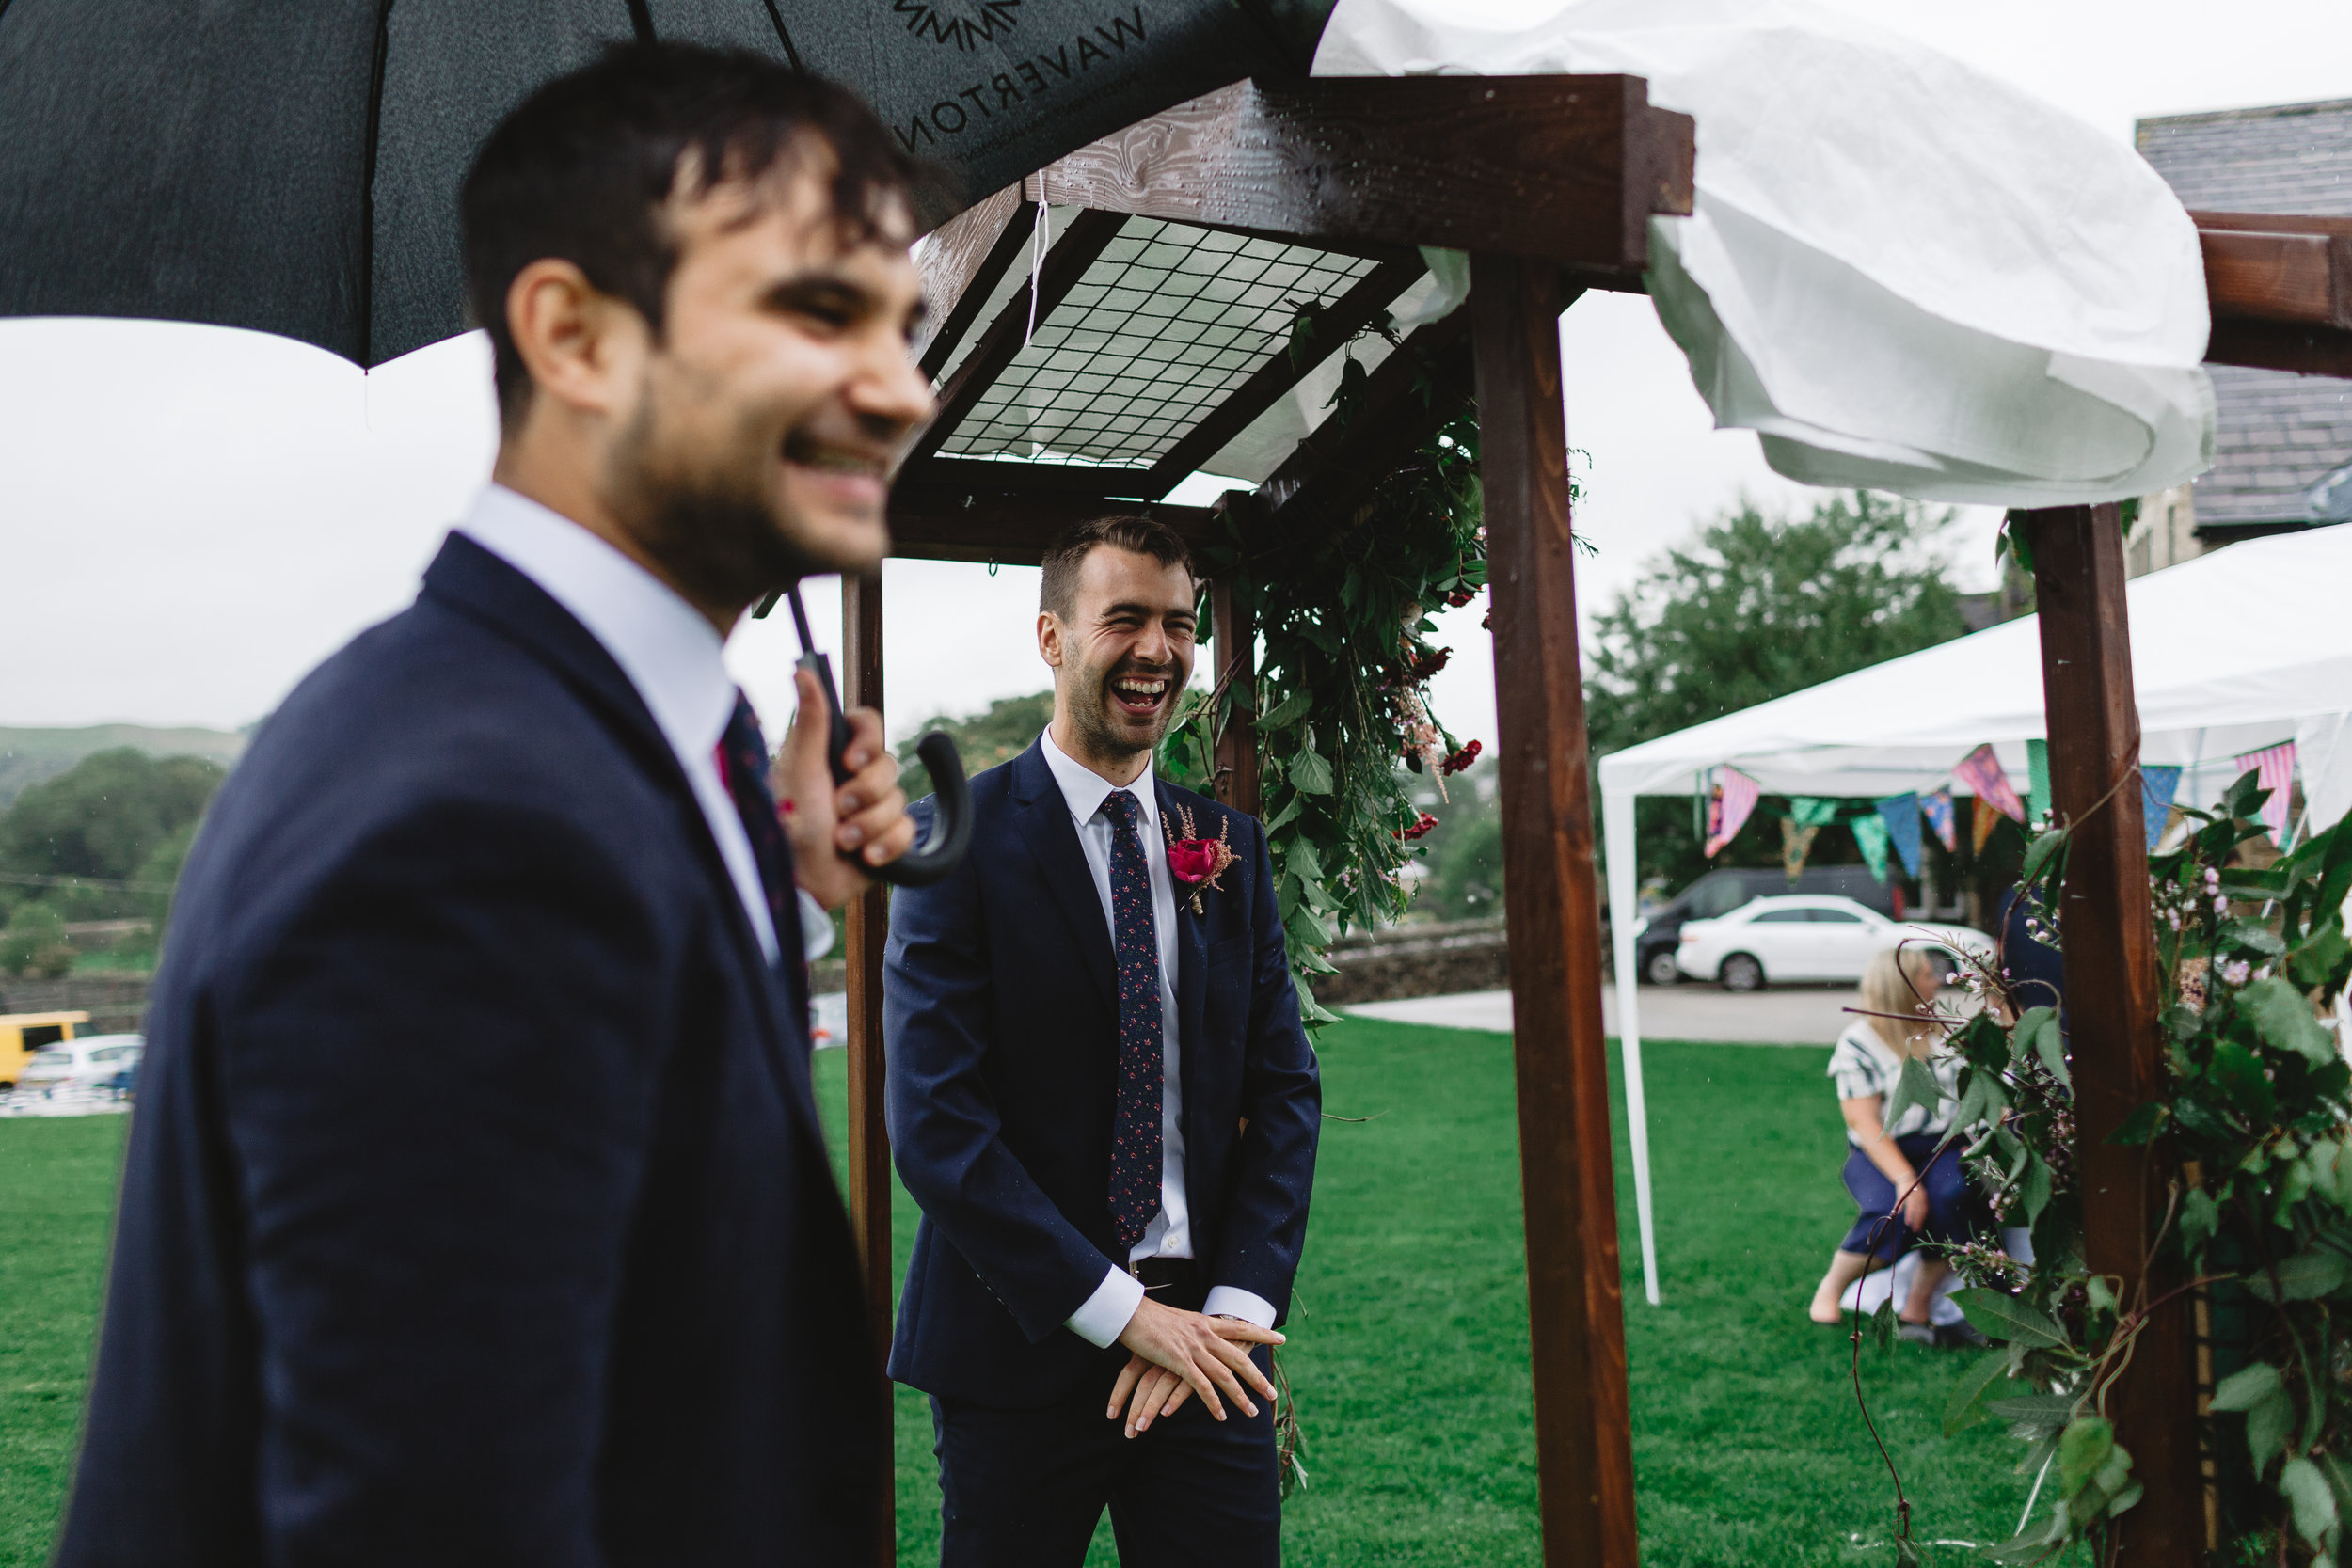 Photography from a North Yorkshire Wedding, Leeds, romantic, outdoor ceremony, DIY wedding, skipton, candid, relaxed fun photographer Groom